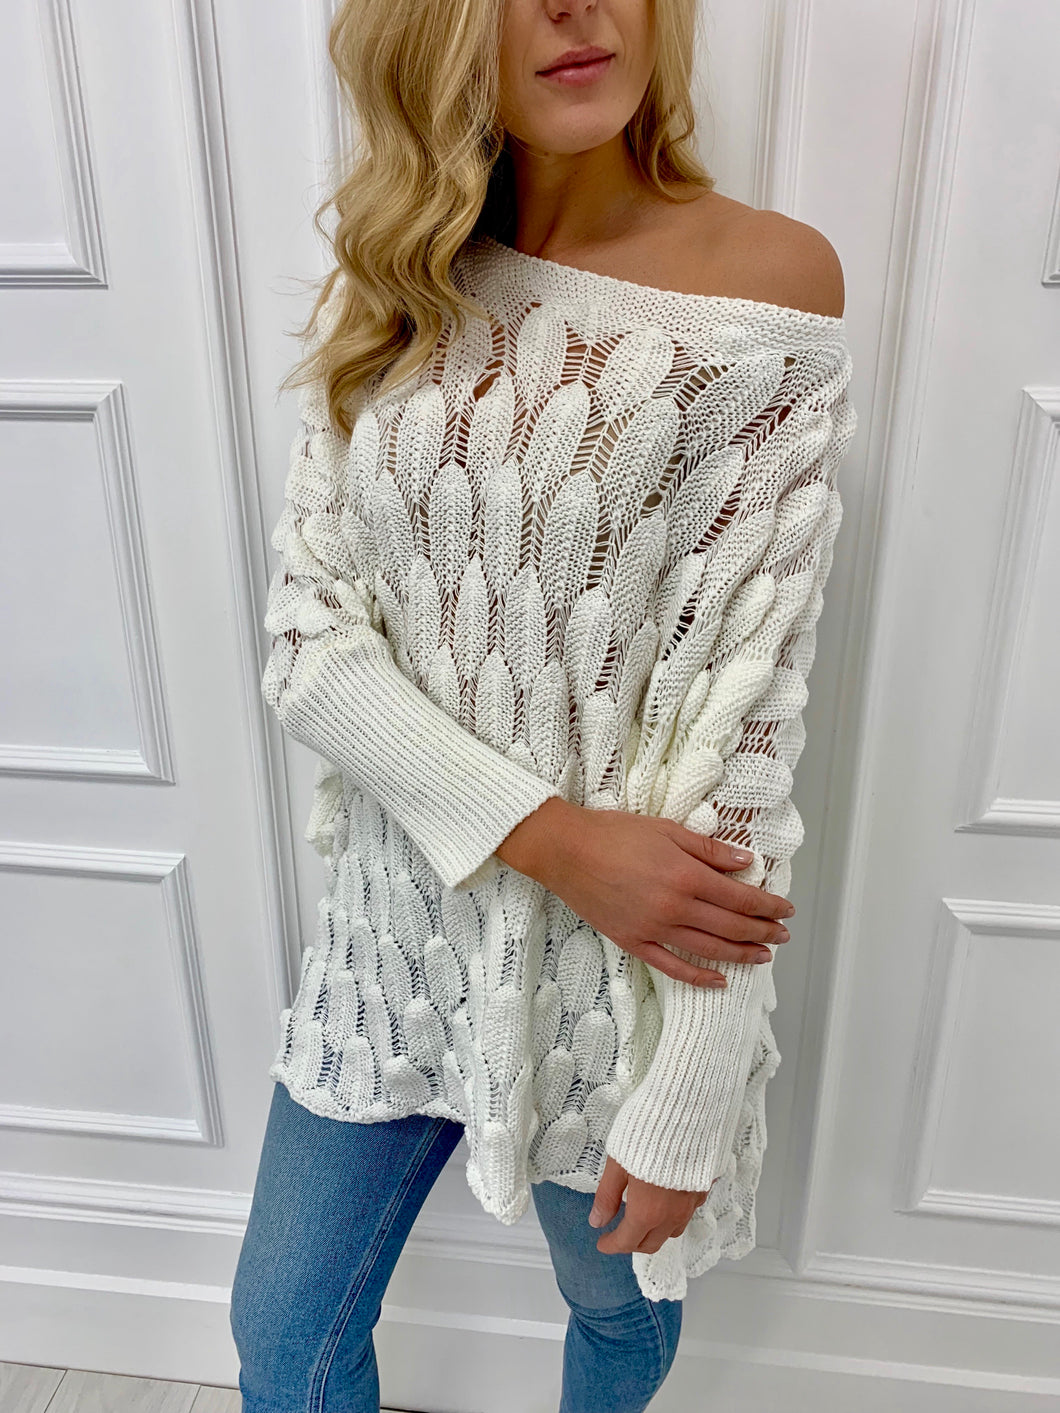 The Becky Knit in Cream